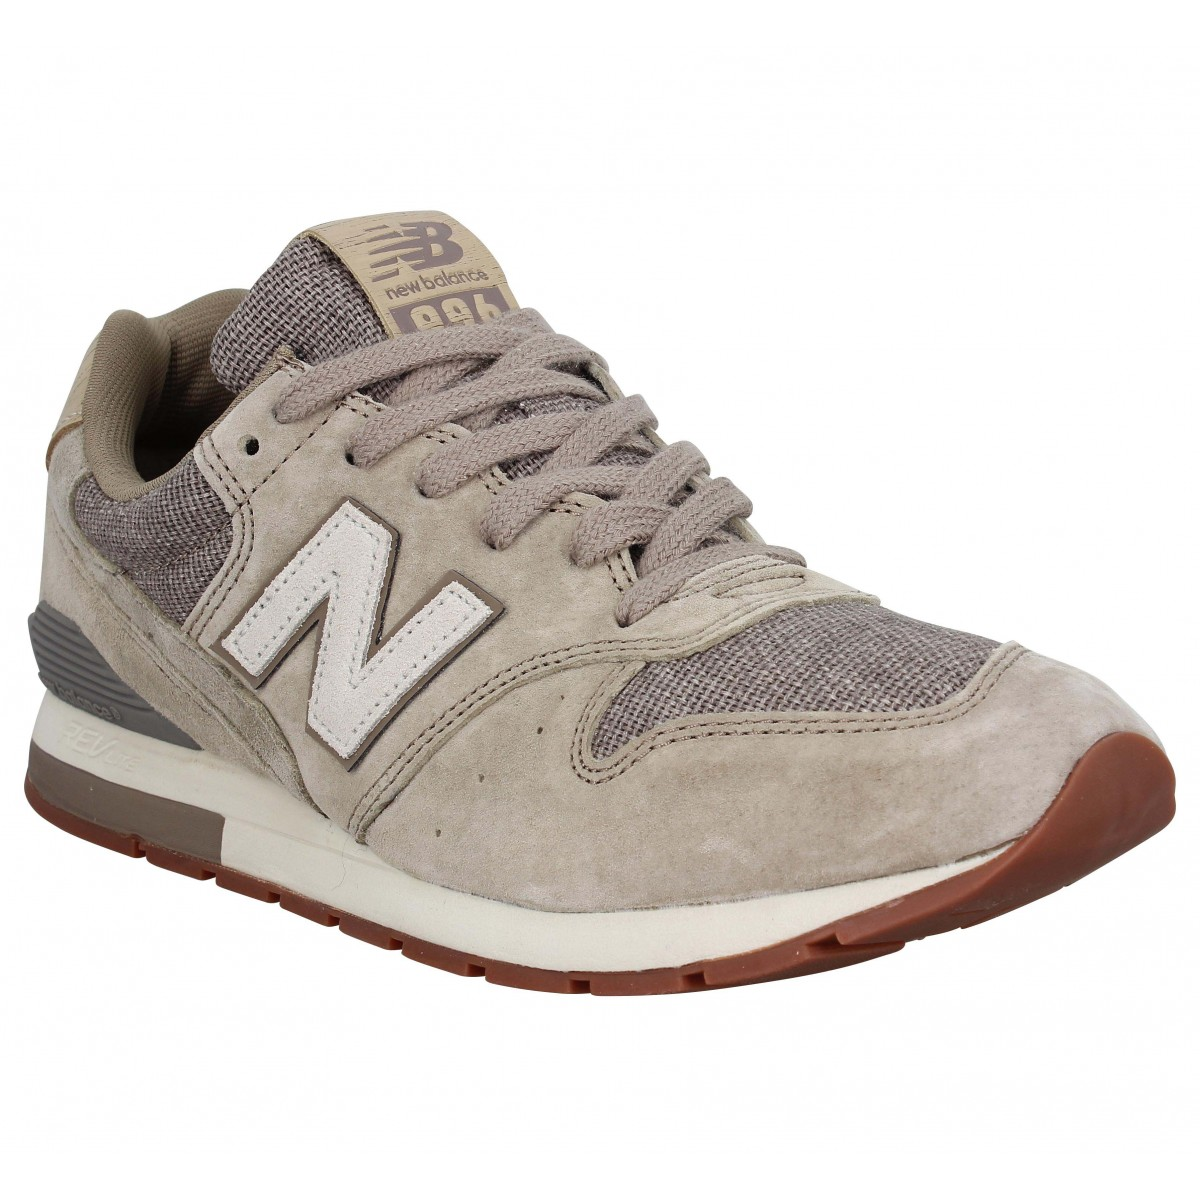 New Balance Marque Mrl 996 Velours Toile...